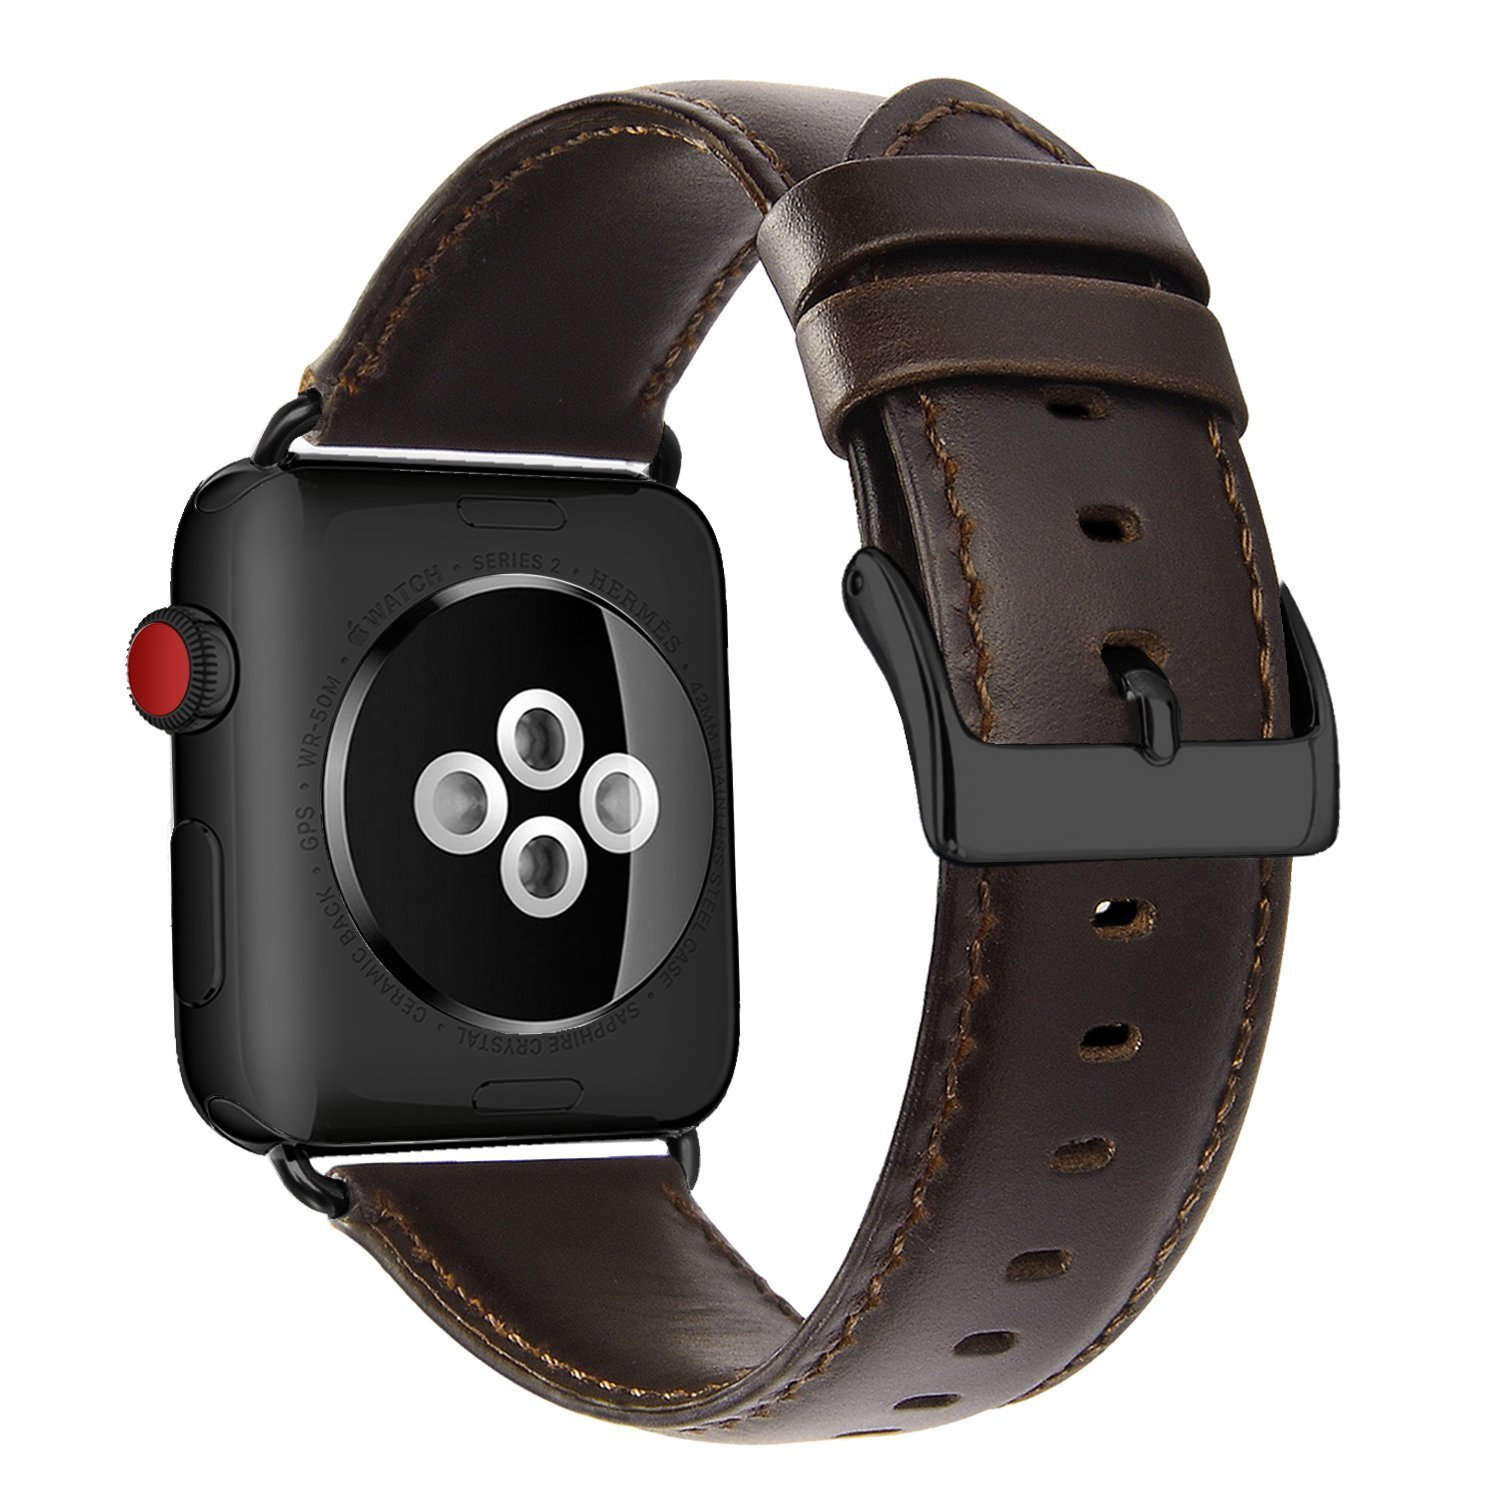 OUHENG Compatible for Apple Watch Band 42mm, Retro Genuine Leather iWatch Strap Replacement Compatible for Apple Watch Series 3 Series 2 Series 1 Sport Edition, Brownish Black Band with Black Adapter by OUHENG (Image #2)